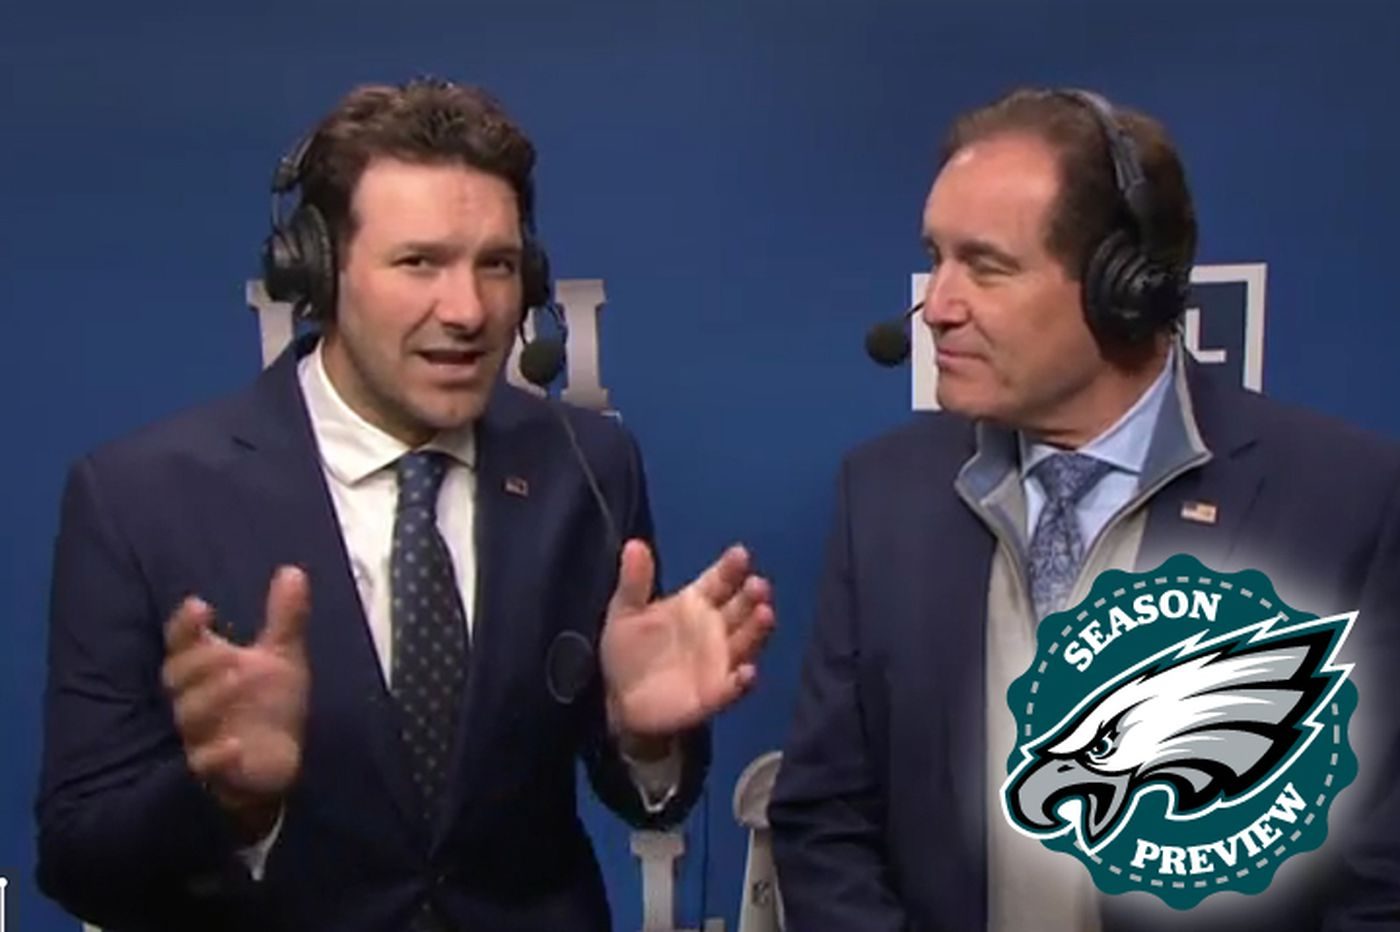 Tony Romo on the Eagles, Carson Wentz, and whether he'll stay with CBS after the NFL season